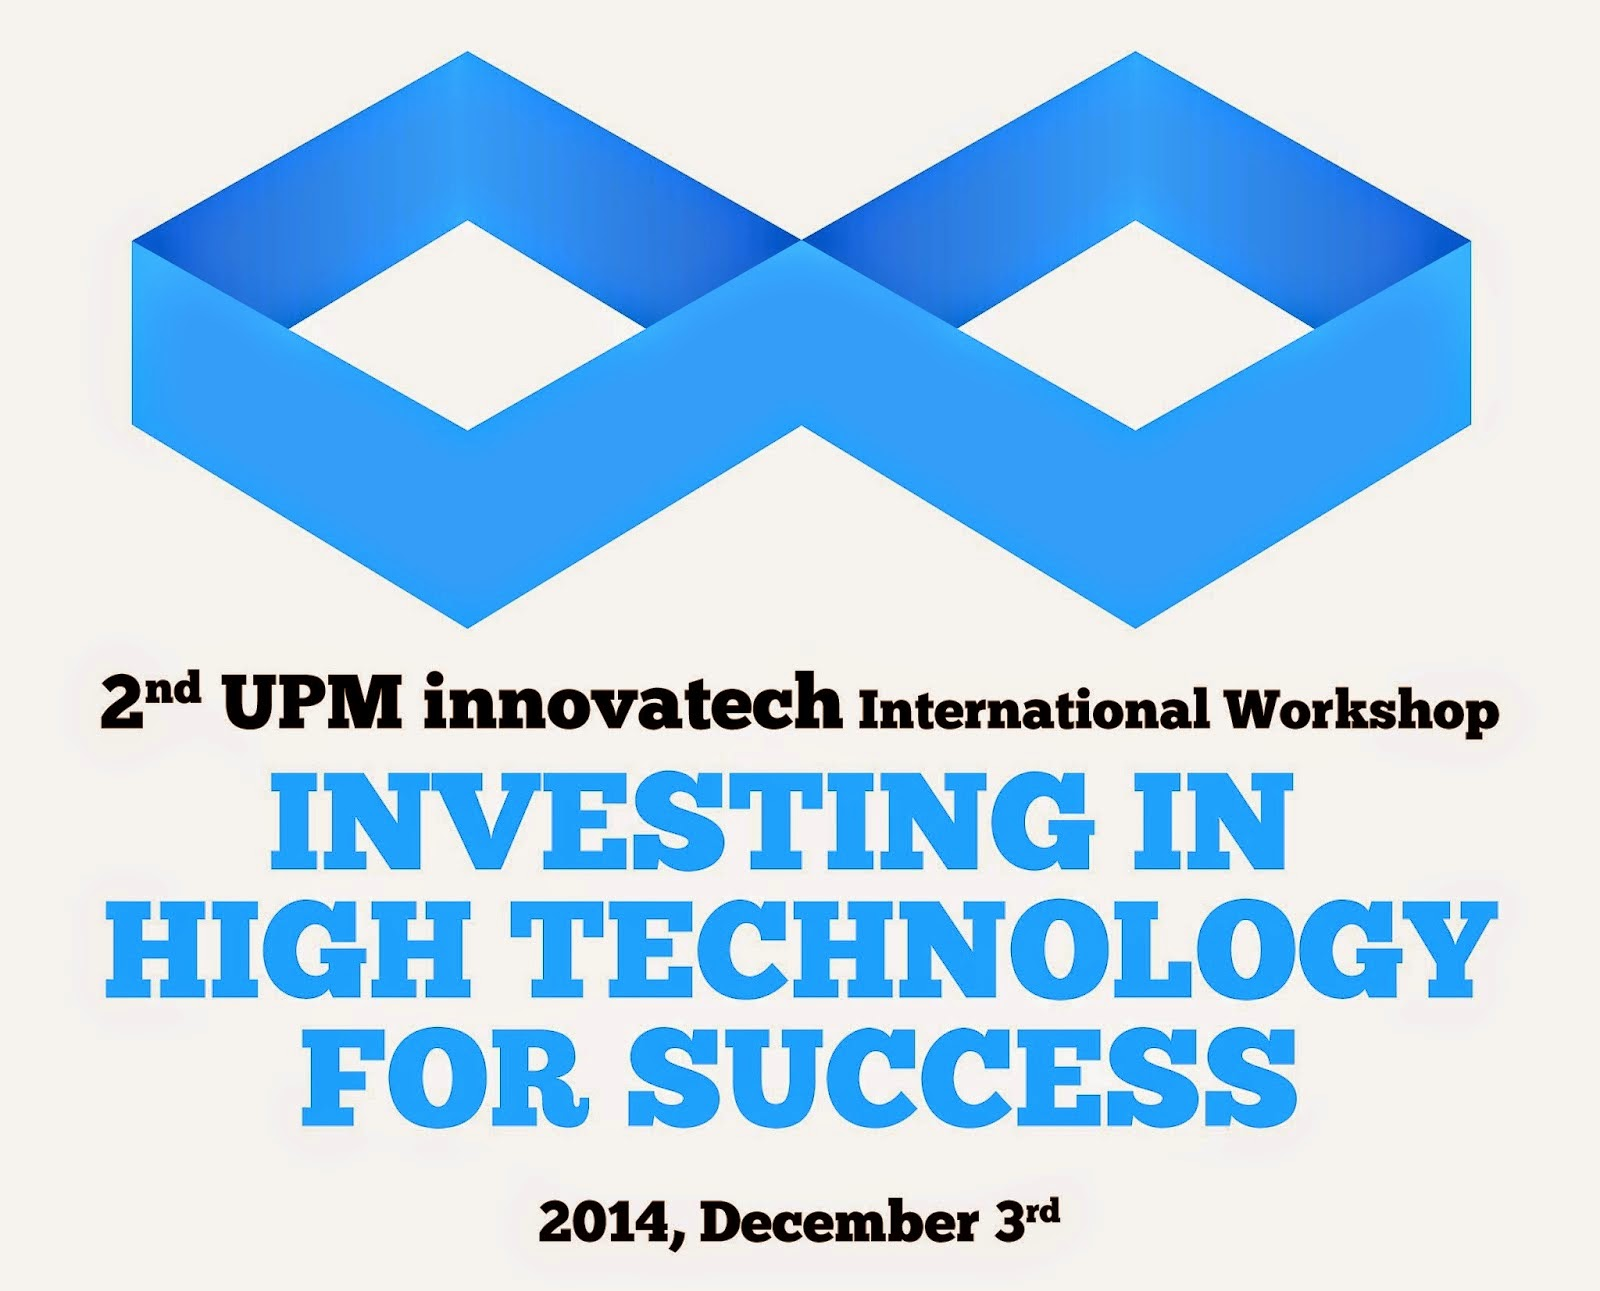 [3 dic] 2nd UPM_Innovatech International Workshop